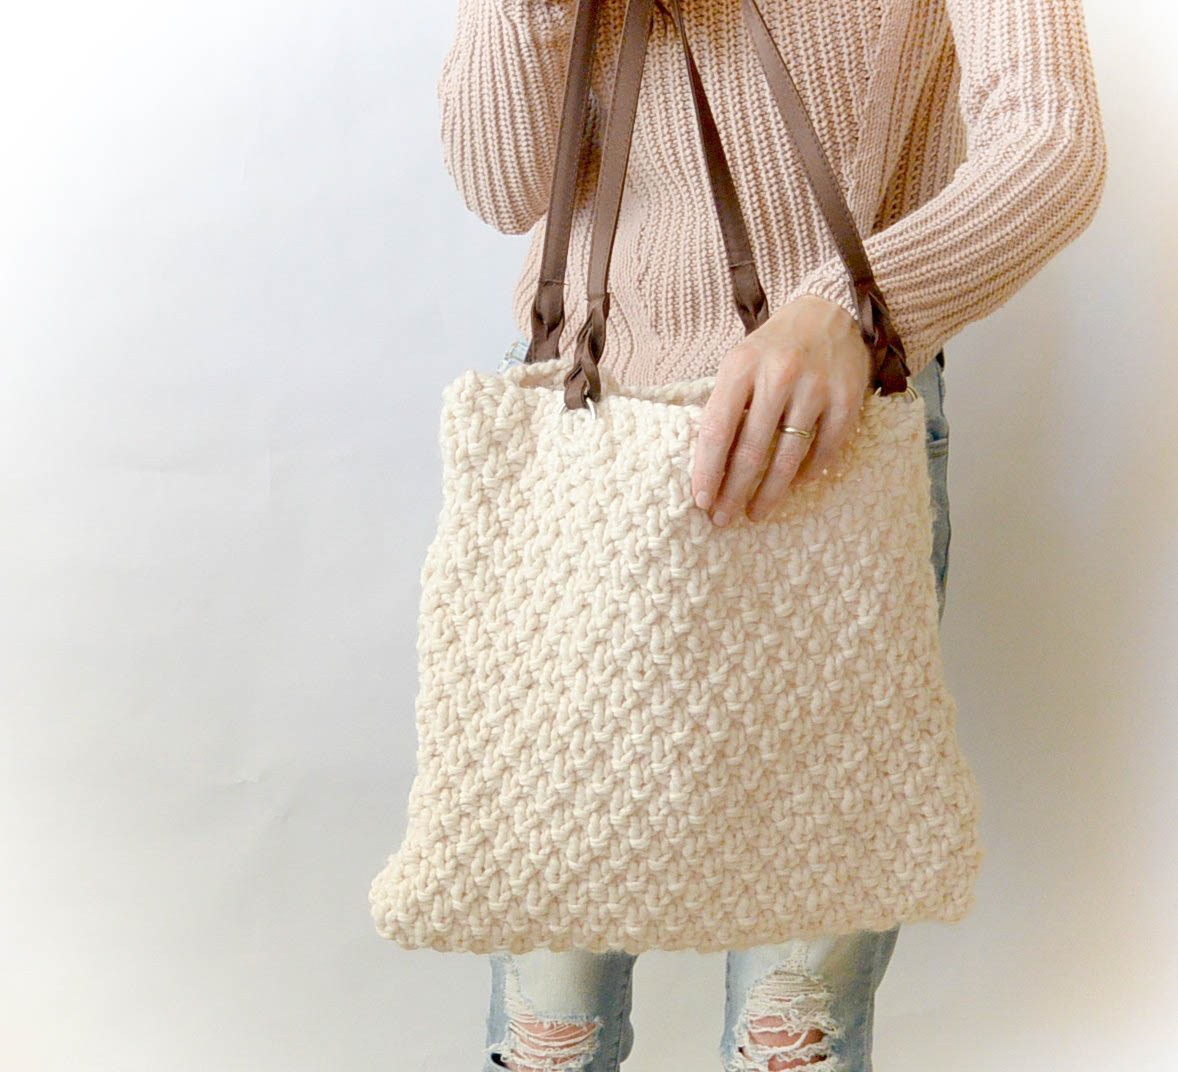 Aspen Mountain Knit Bag Pattern